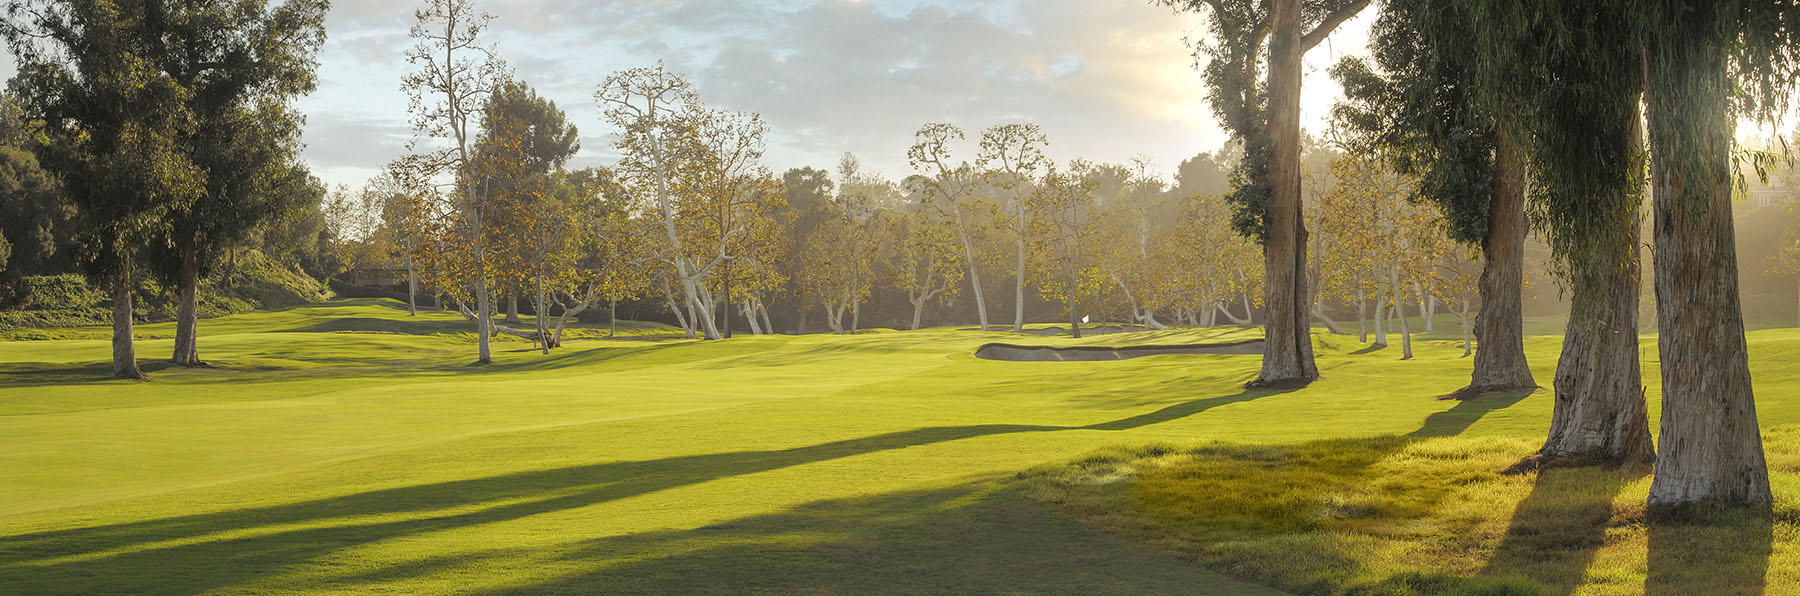 Golf Course Image - Riviera Country Club No. 15